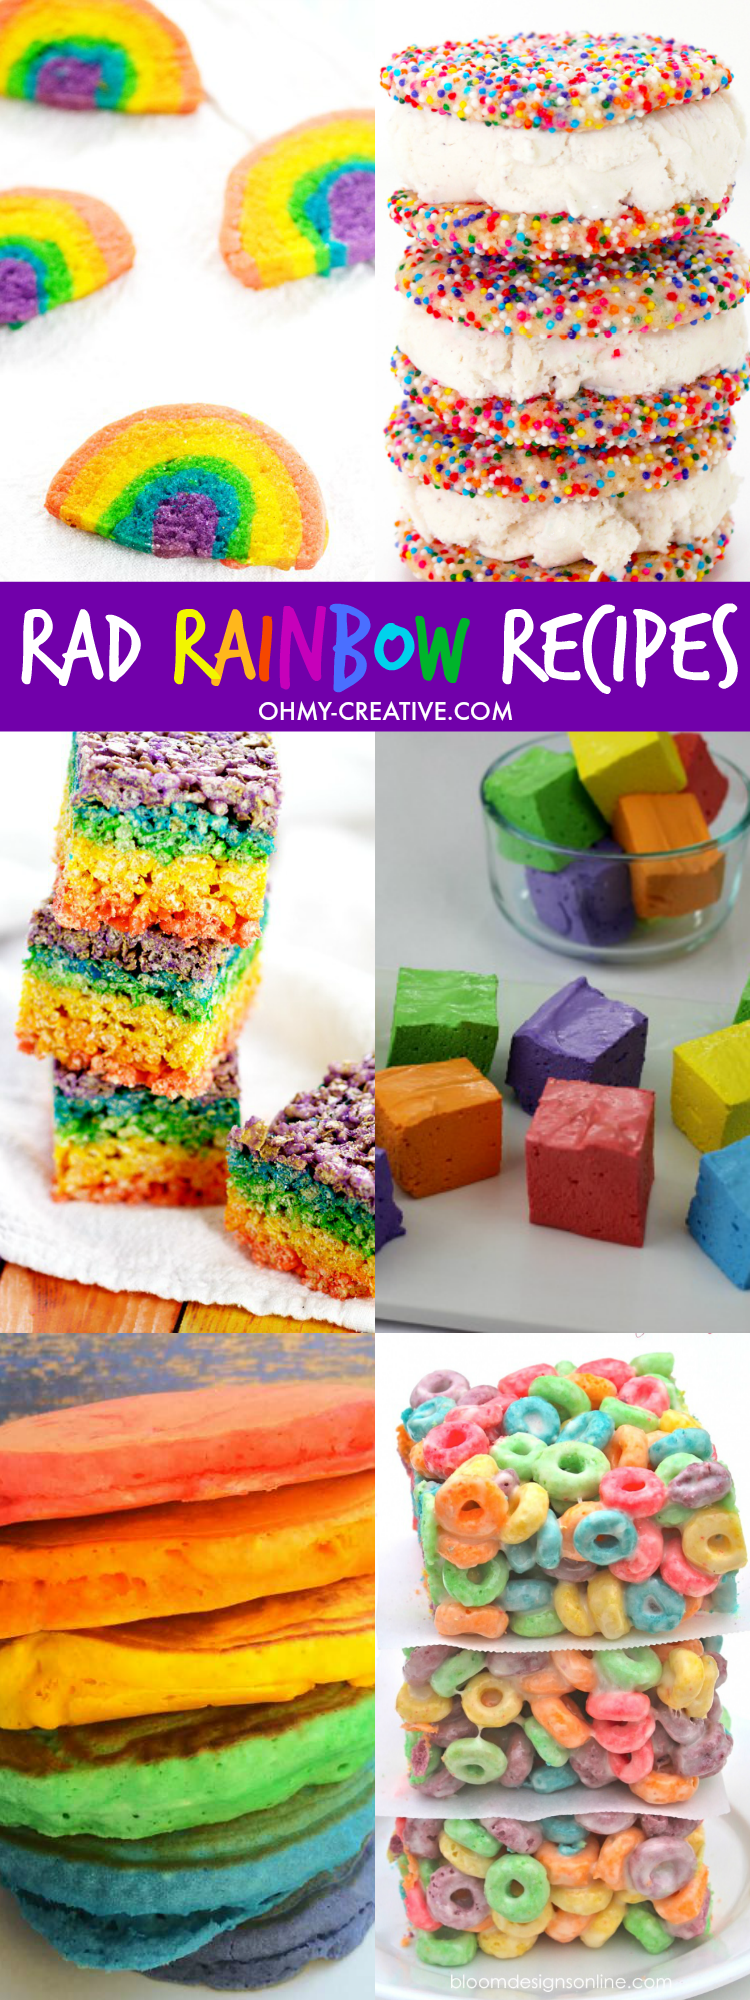 How to make rainbow food with these Rad Rainbow Recipes! Fun for Rainbow Party Themes or St. Patrick's Day | OHMY-CREATIVE.COM